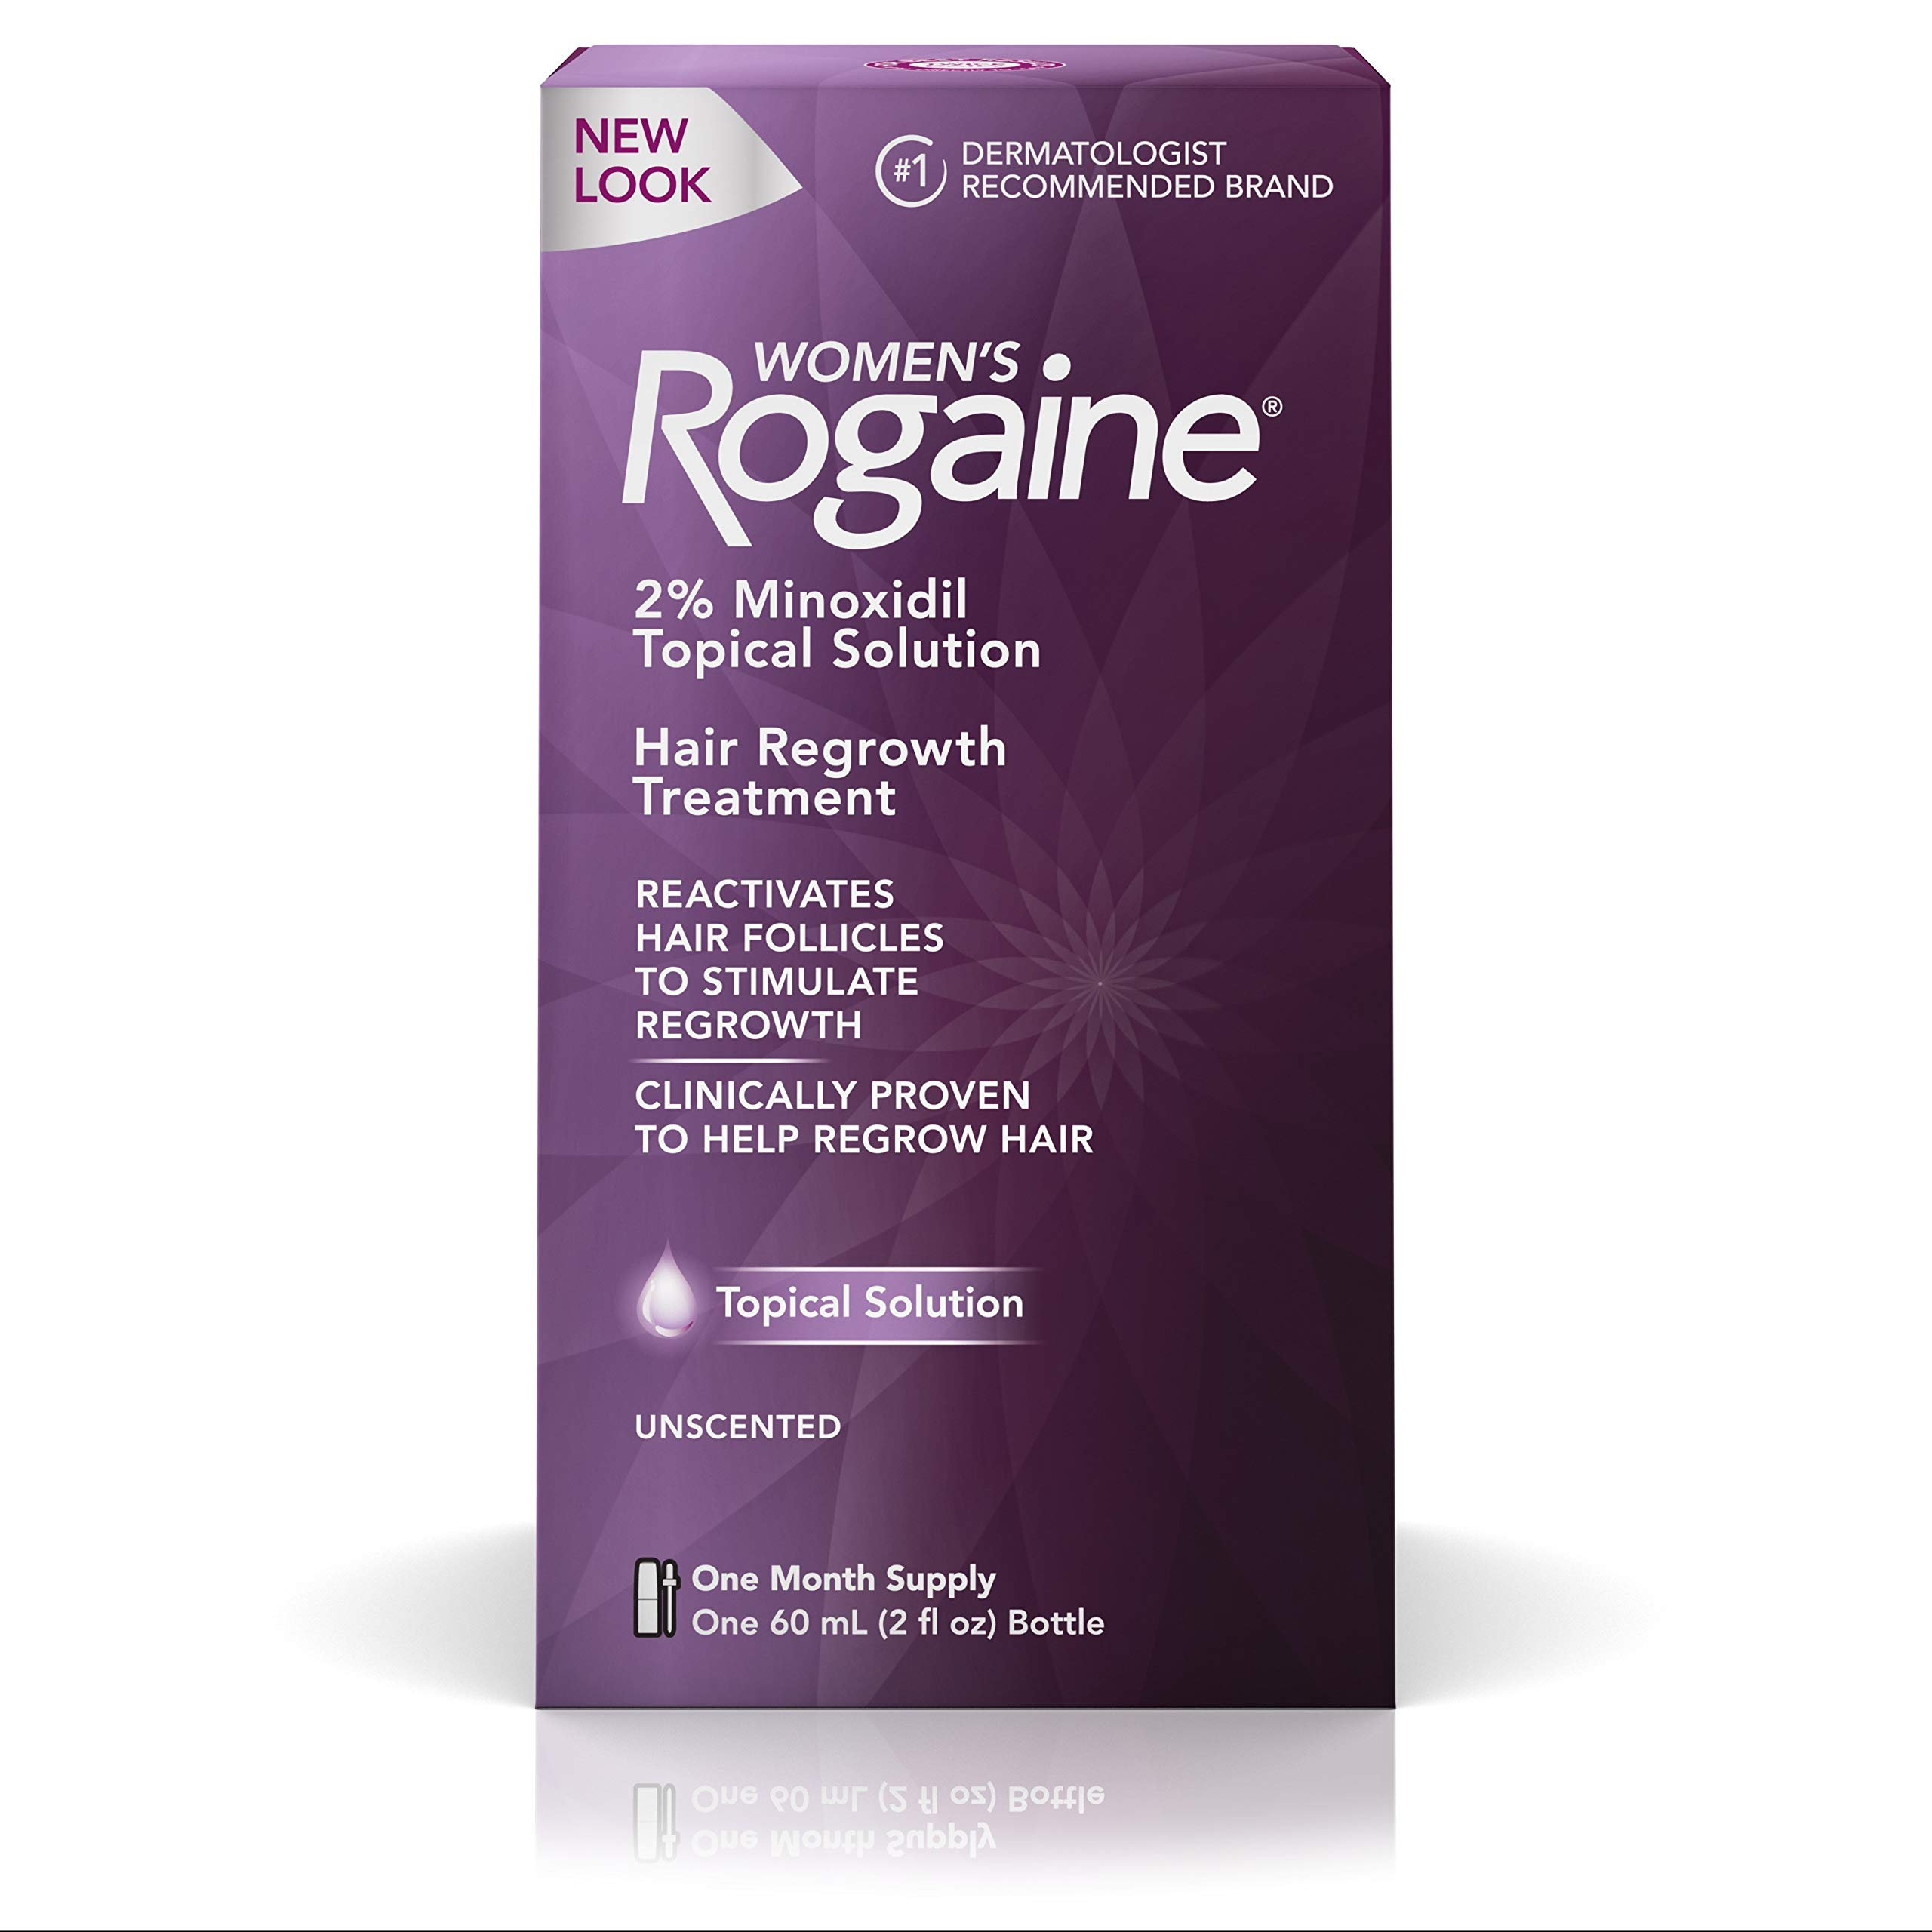 Women's Rogaine 2% Minoxidil Topical Solution for Hair Thinning and Loss, Topical Treatment for Women's Hair Regrowth, 1-Month Supply by Rogaine